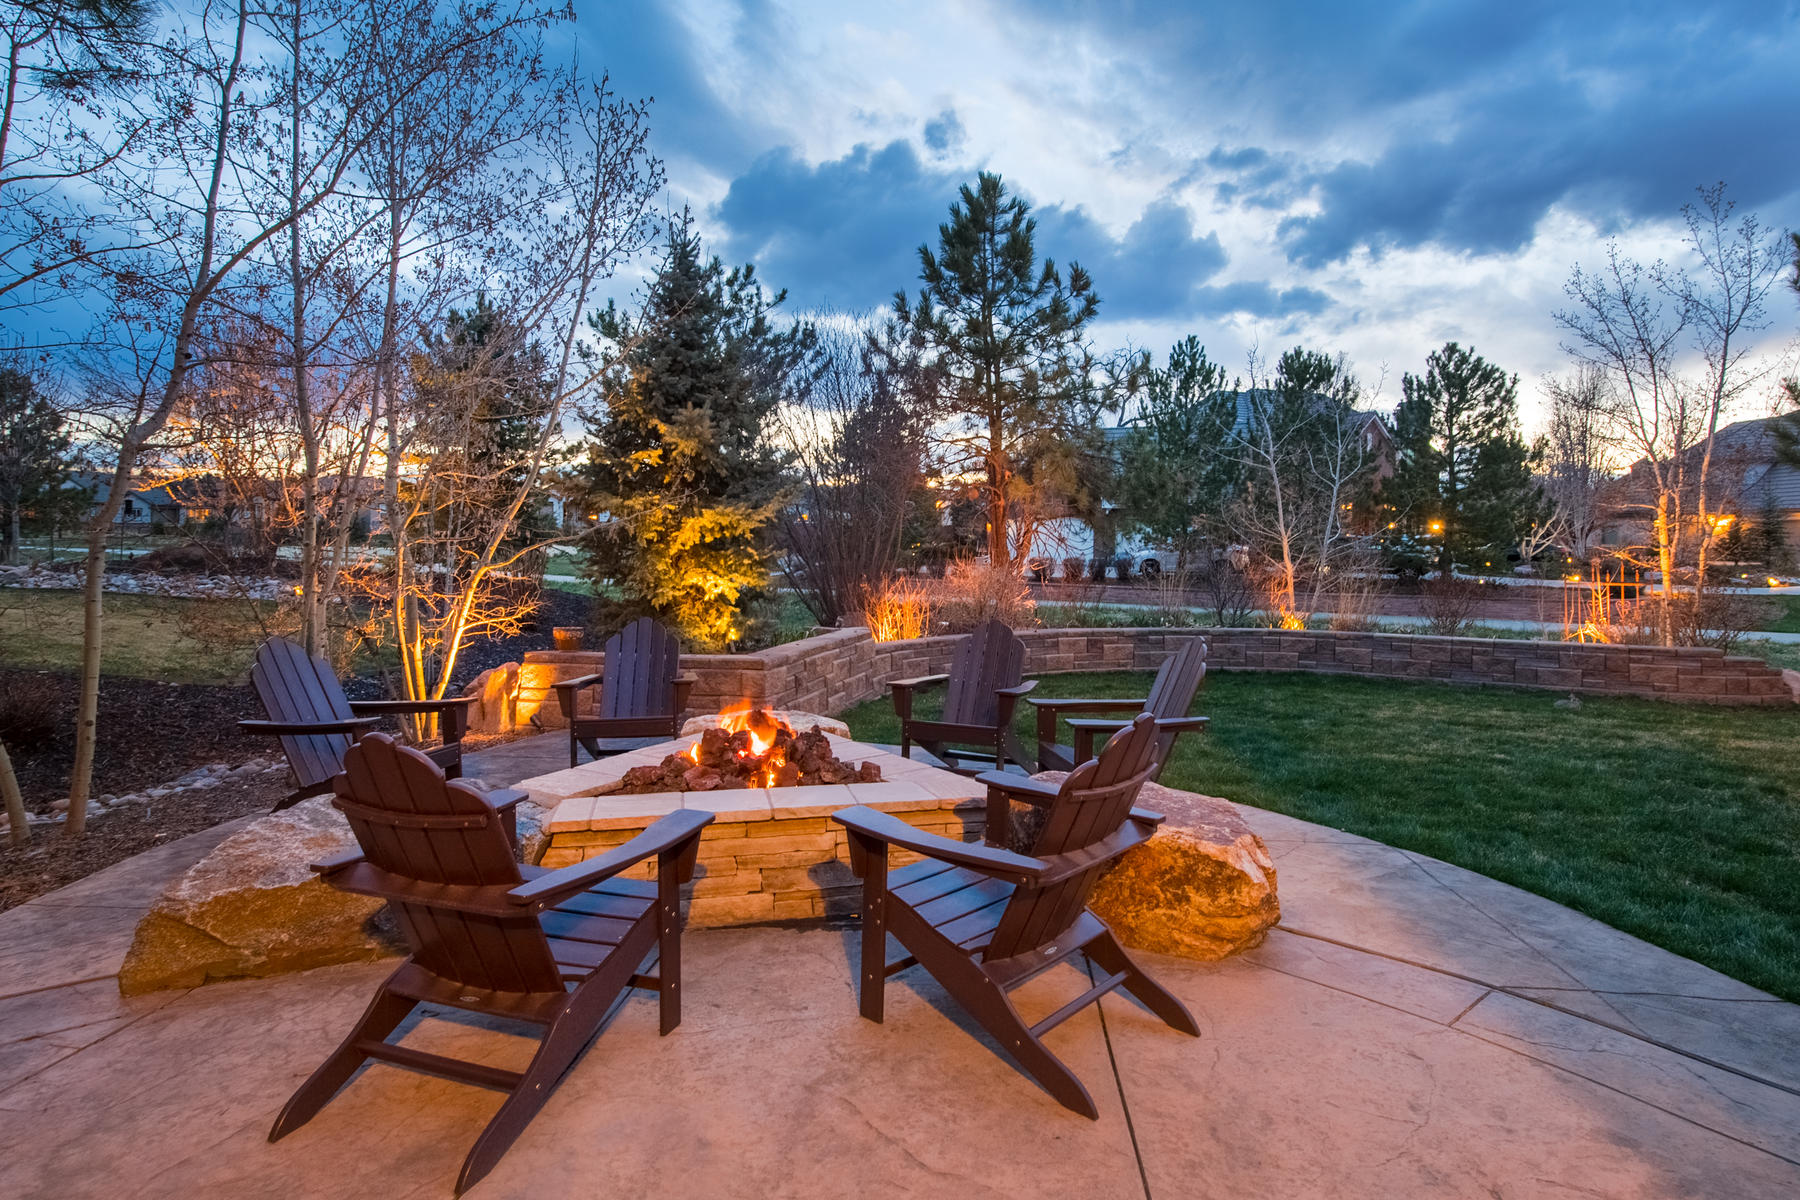 Additional photo for property listing at Capture your Colorado dream with this magnificent one-of-a-kind home! 29 Brookhaven Ln Littleton, Colorado 80123 United States